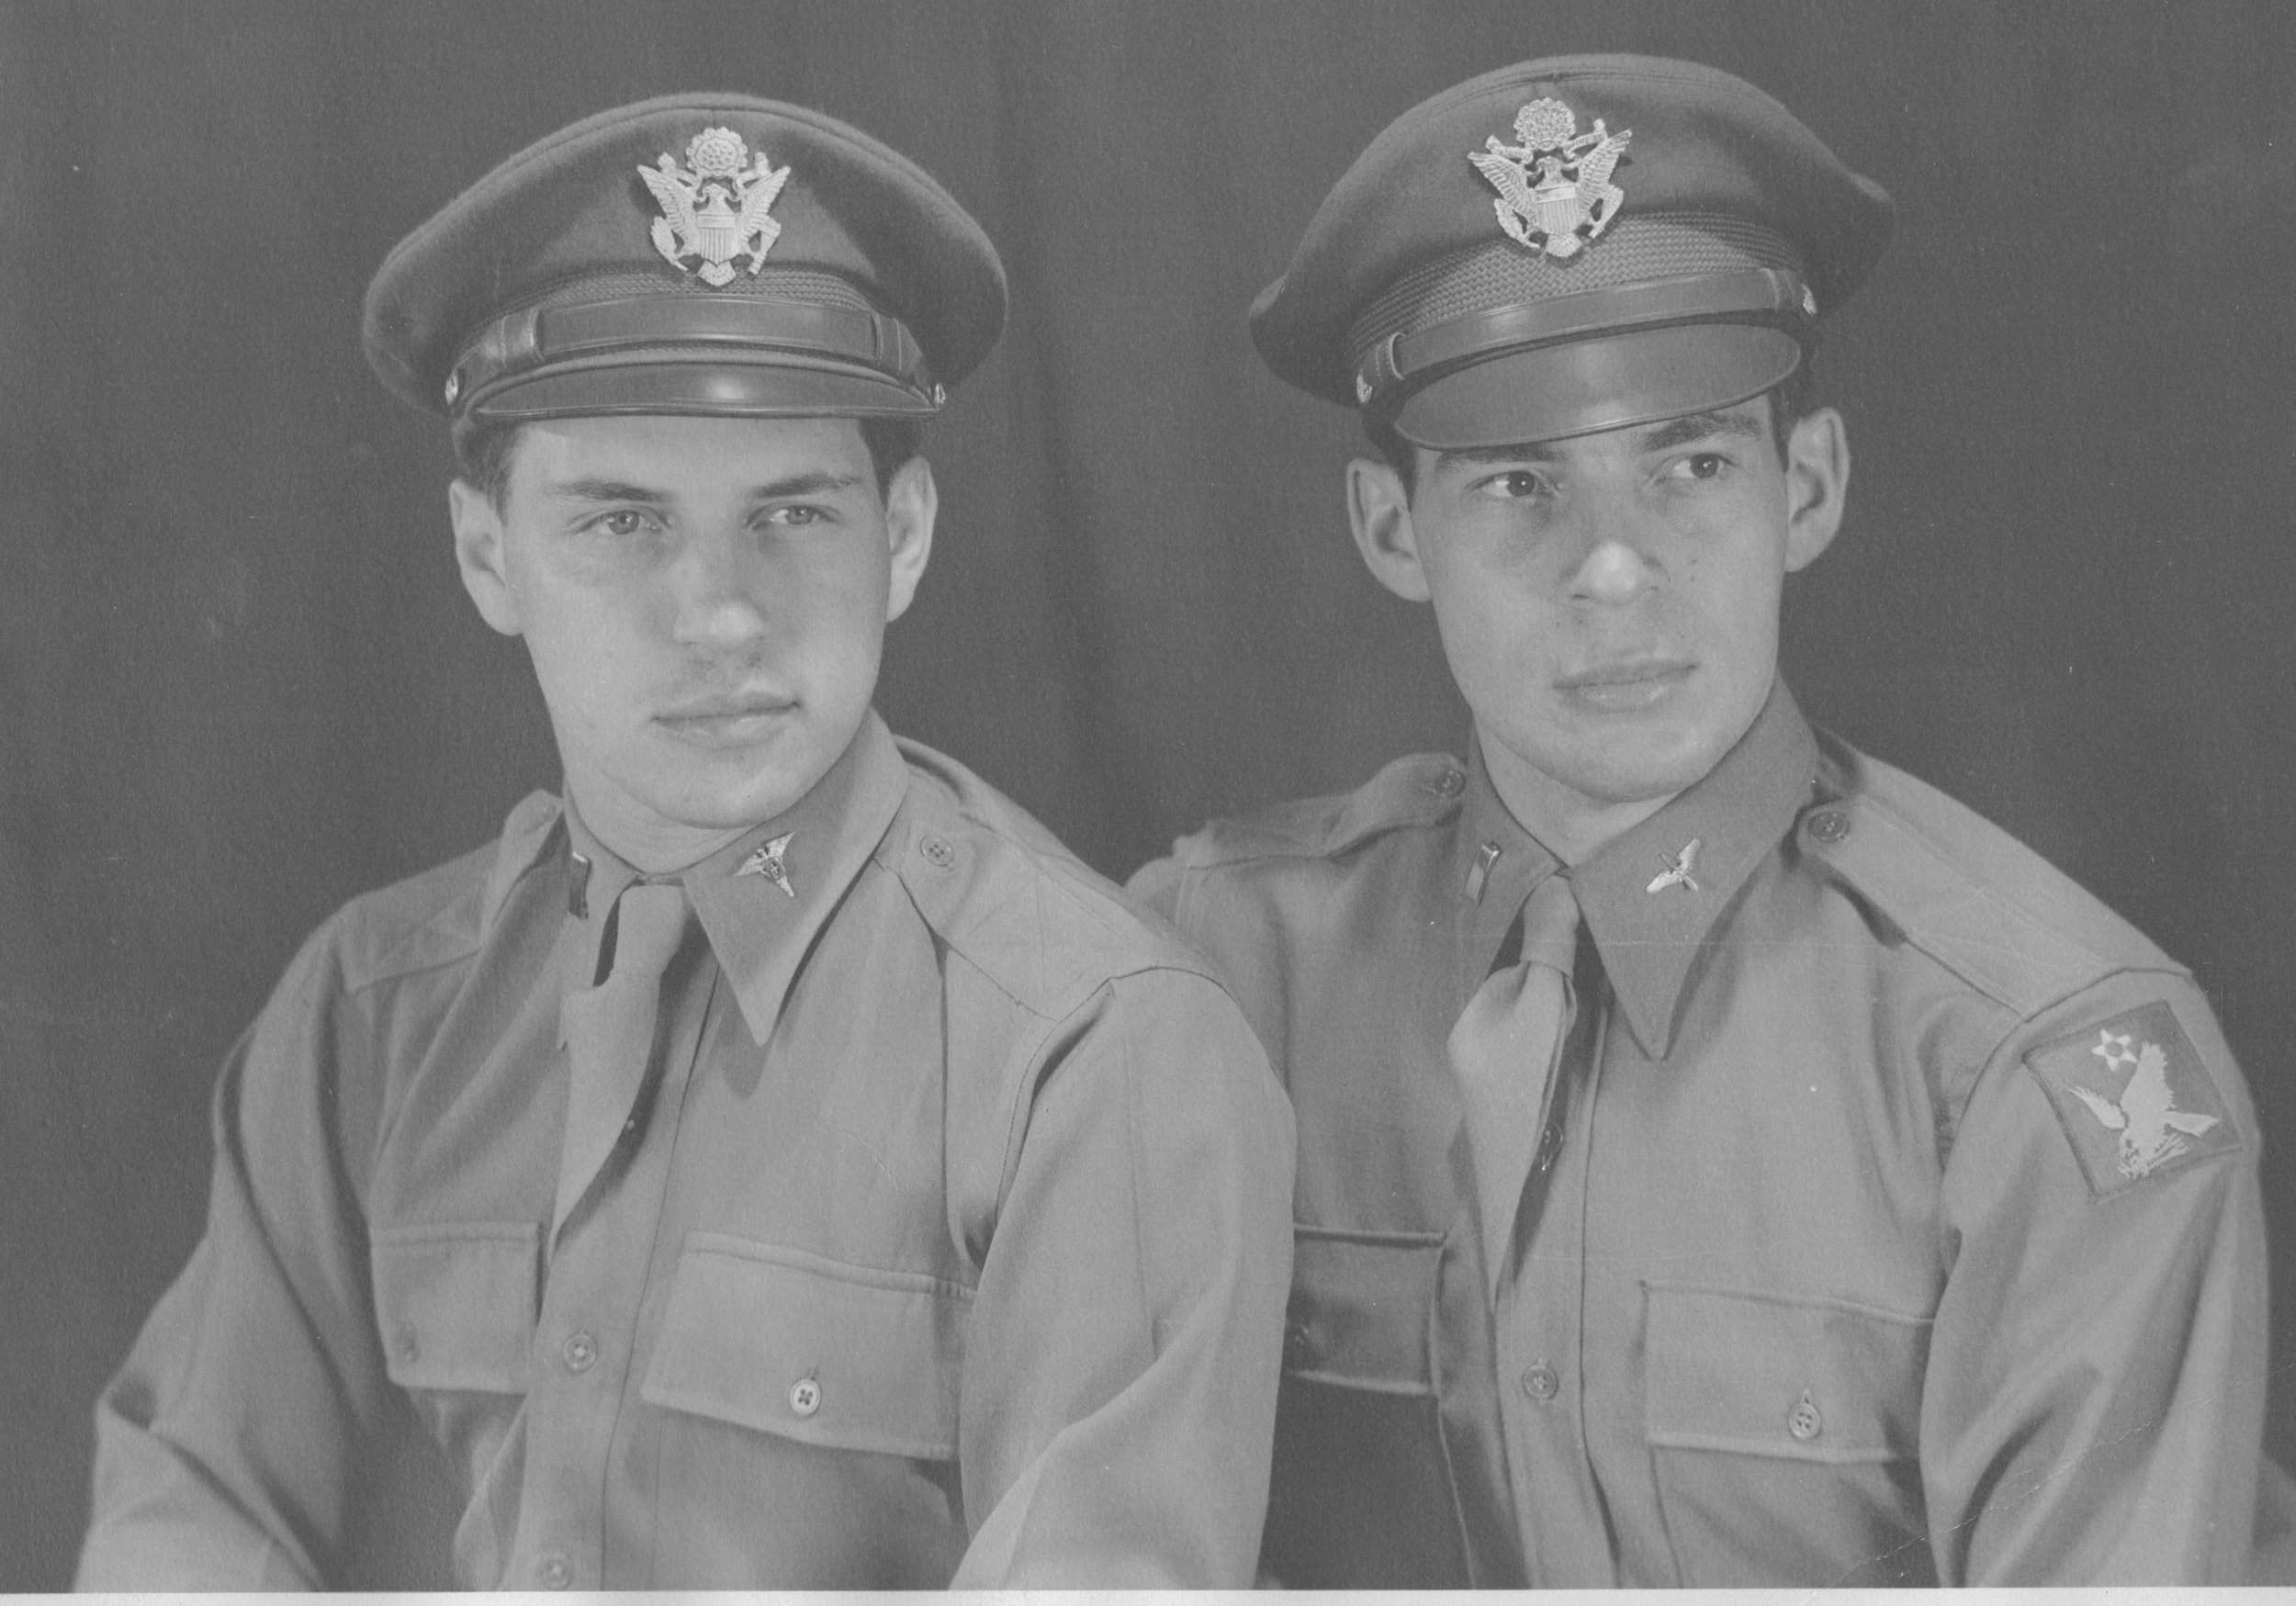 Herman, right, and his brother, Harold, in 1944 when Herman was commissioned as an officer in the U.S. Army Air Corps.